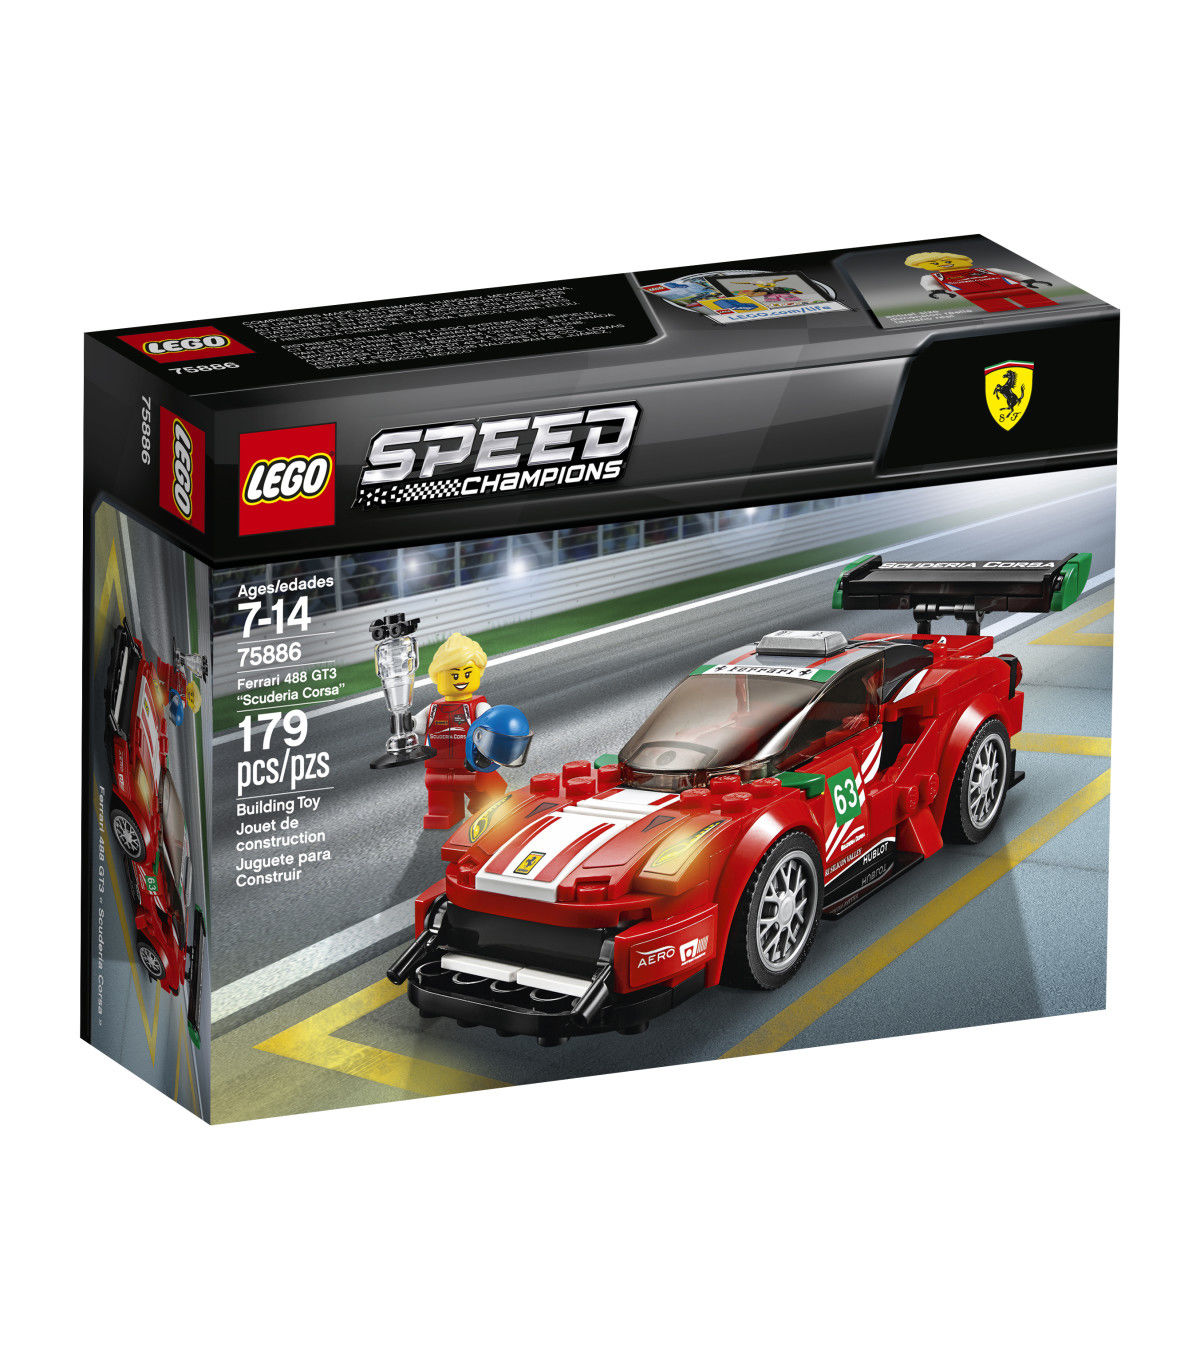 Ford Mustang GT Lego Speed Champions Racing Driver Match Play Toys Build Figures